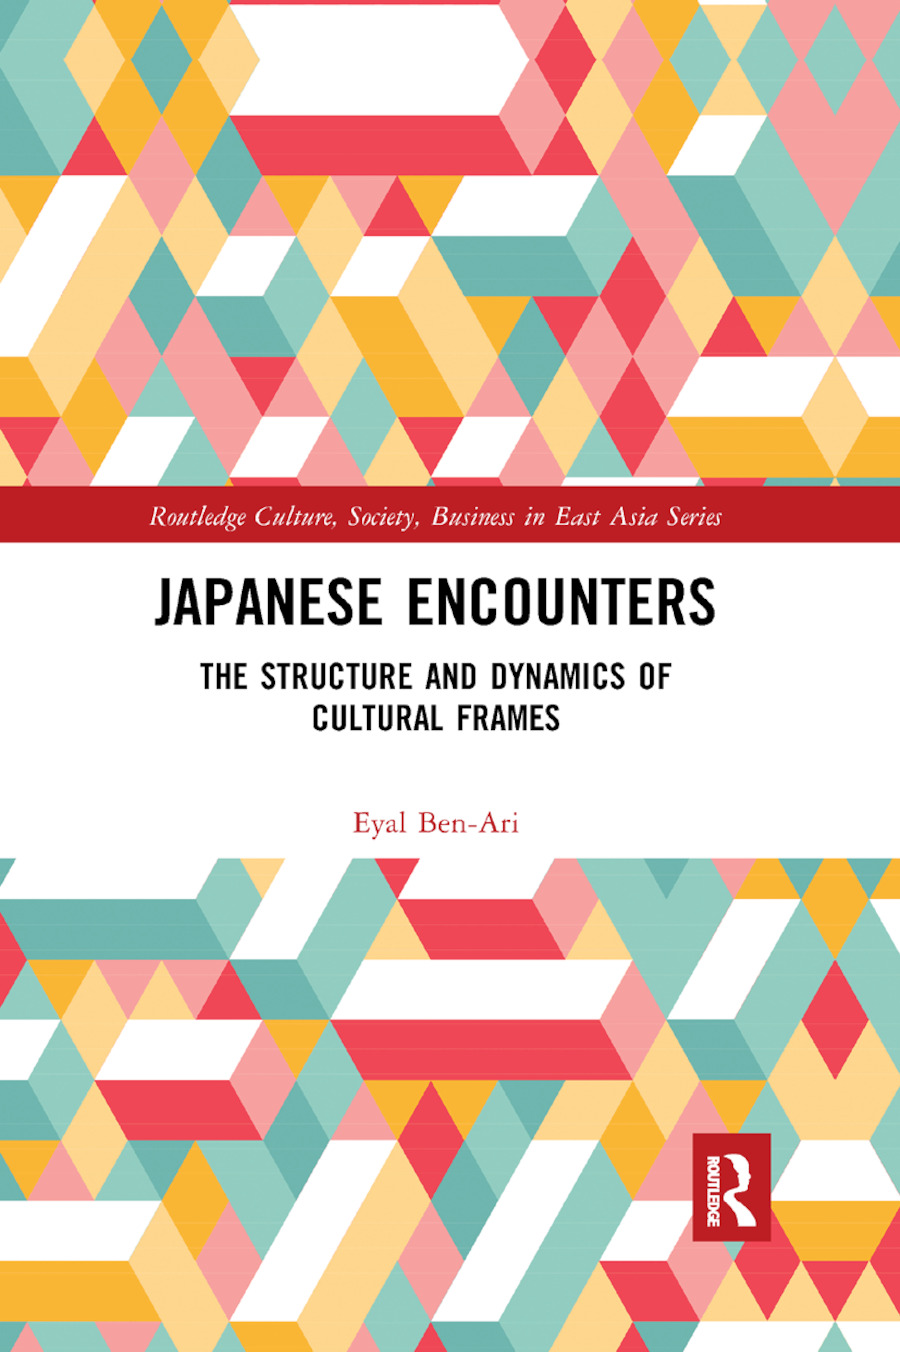 Japanese Encounters: The Structure and Dynamics of Cultural Frames book cover